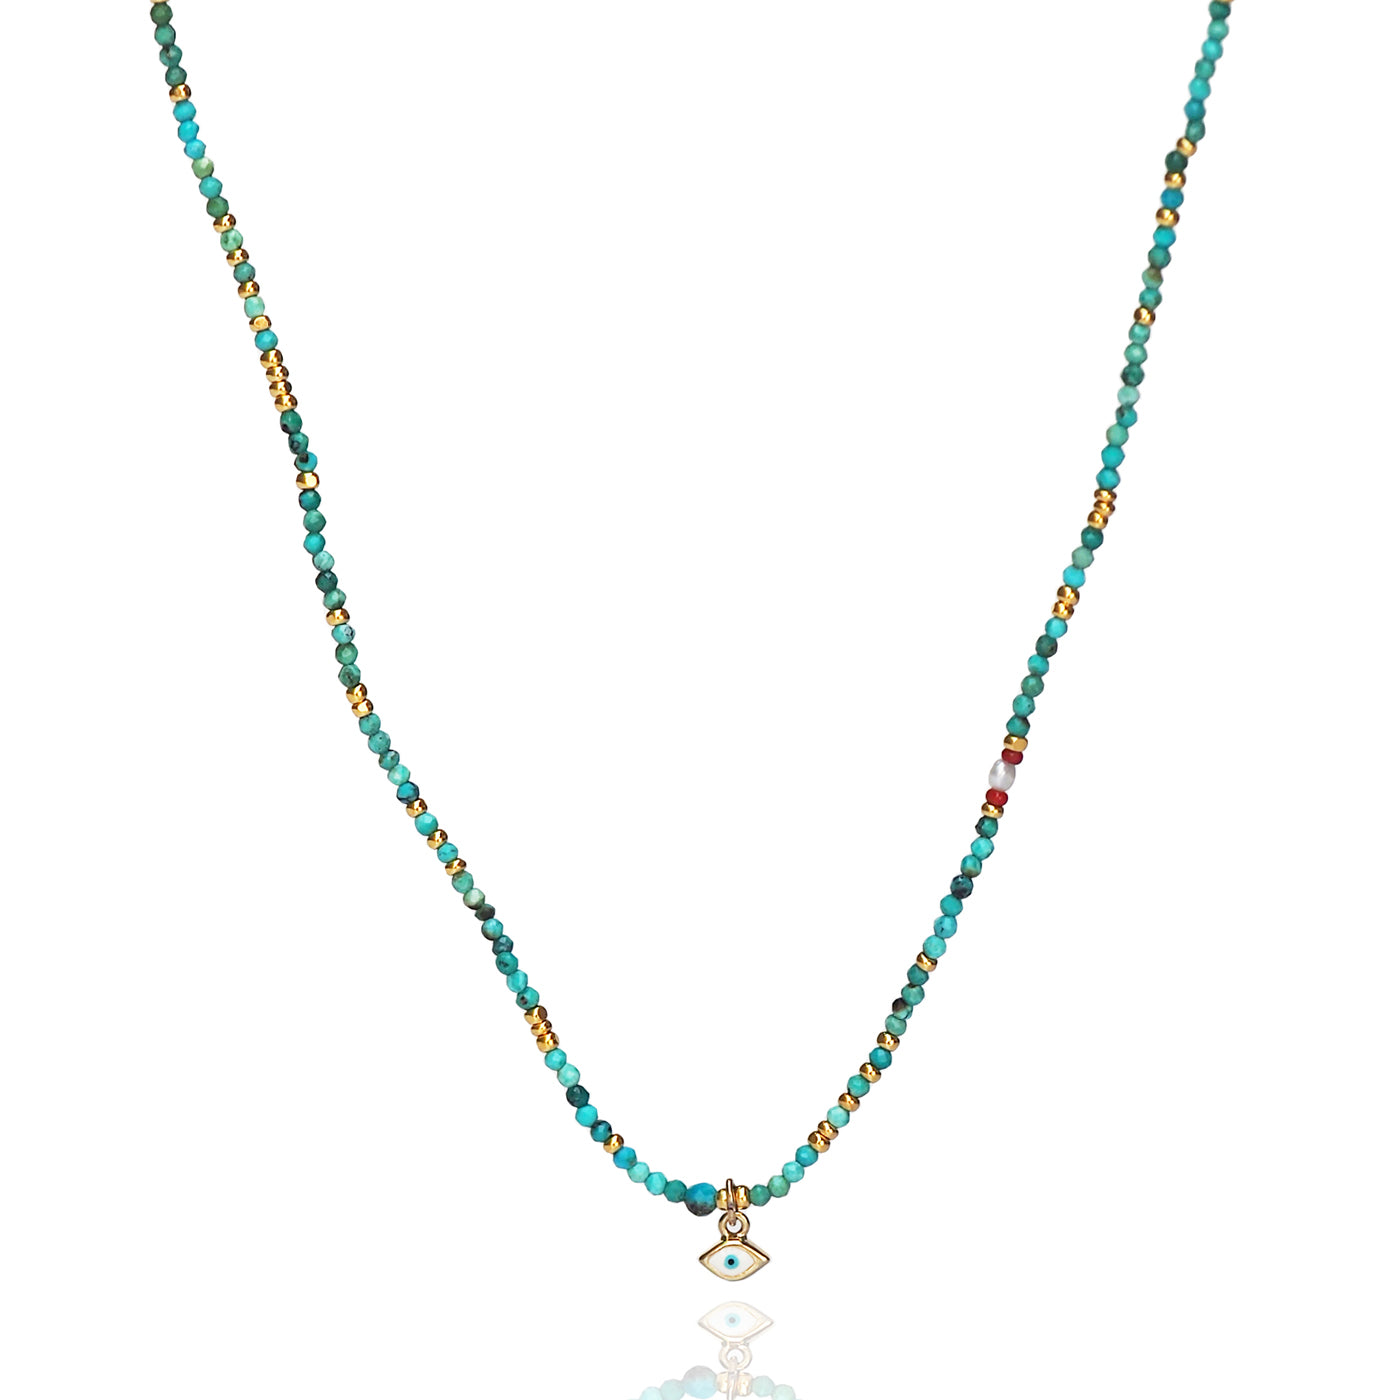 Handmade Turquoise Beaded Necklace with Evil Eye Dangle